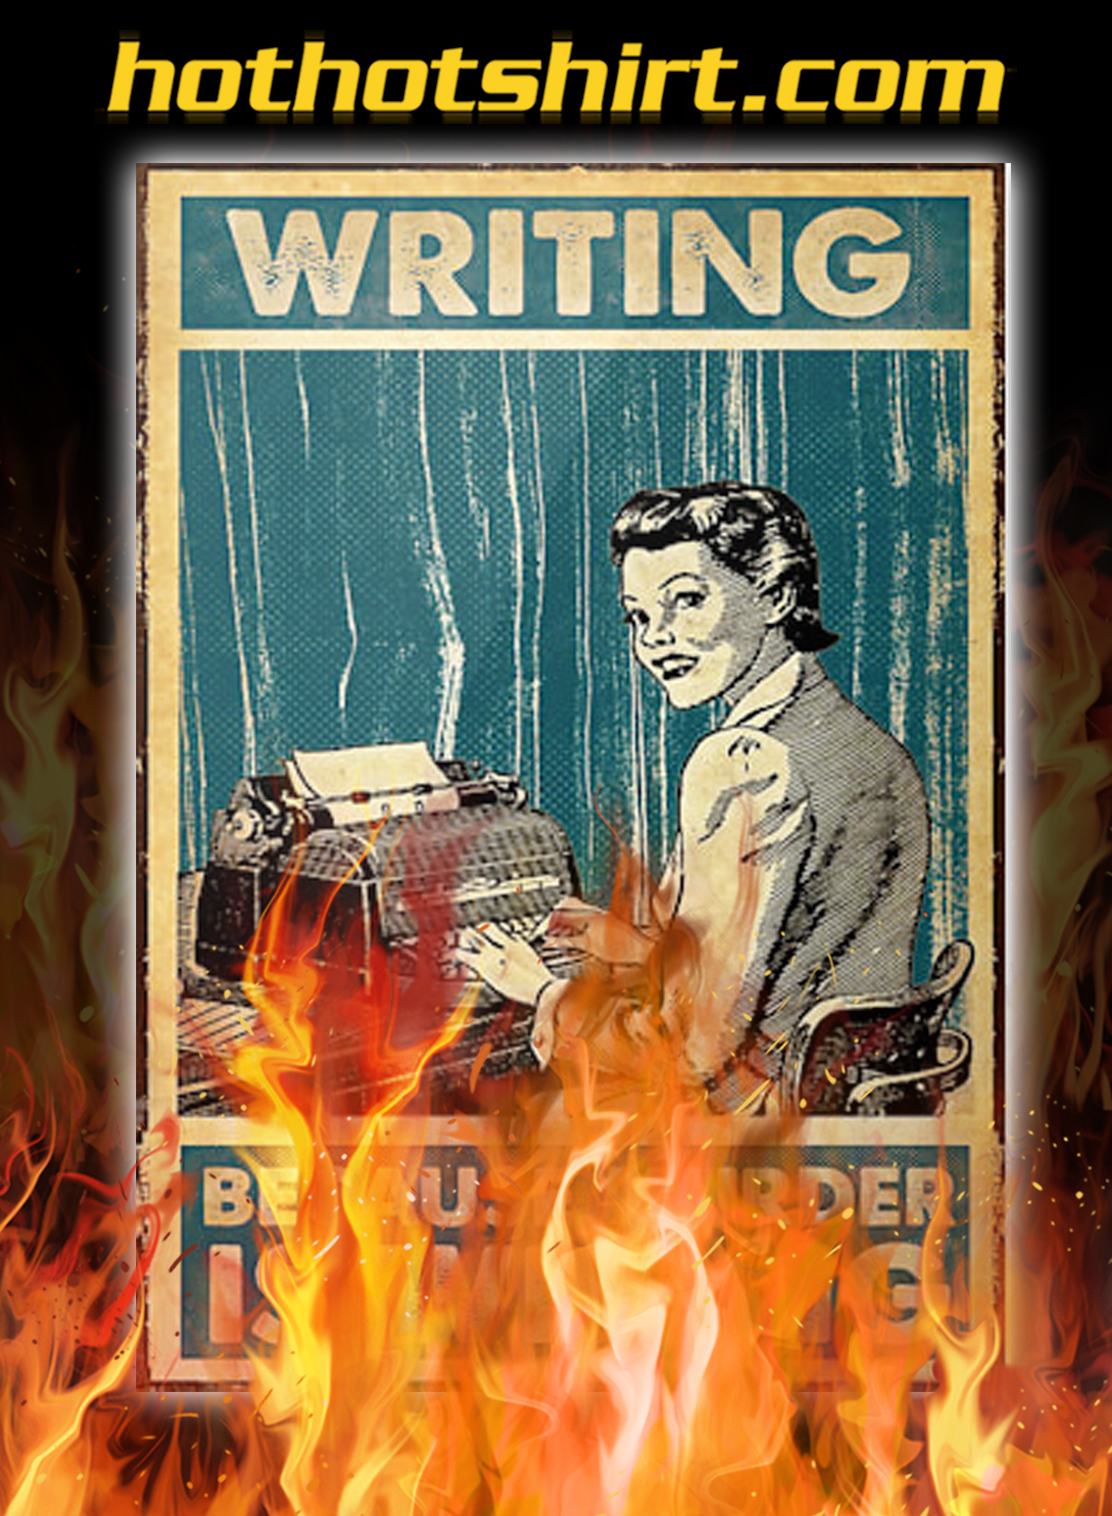 Typing girl writing because murder is wrong poster - A4